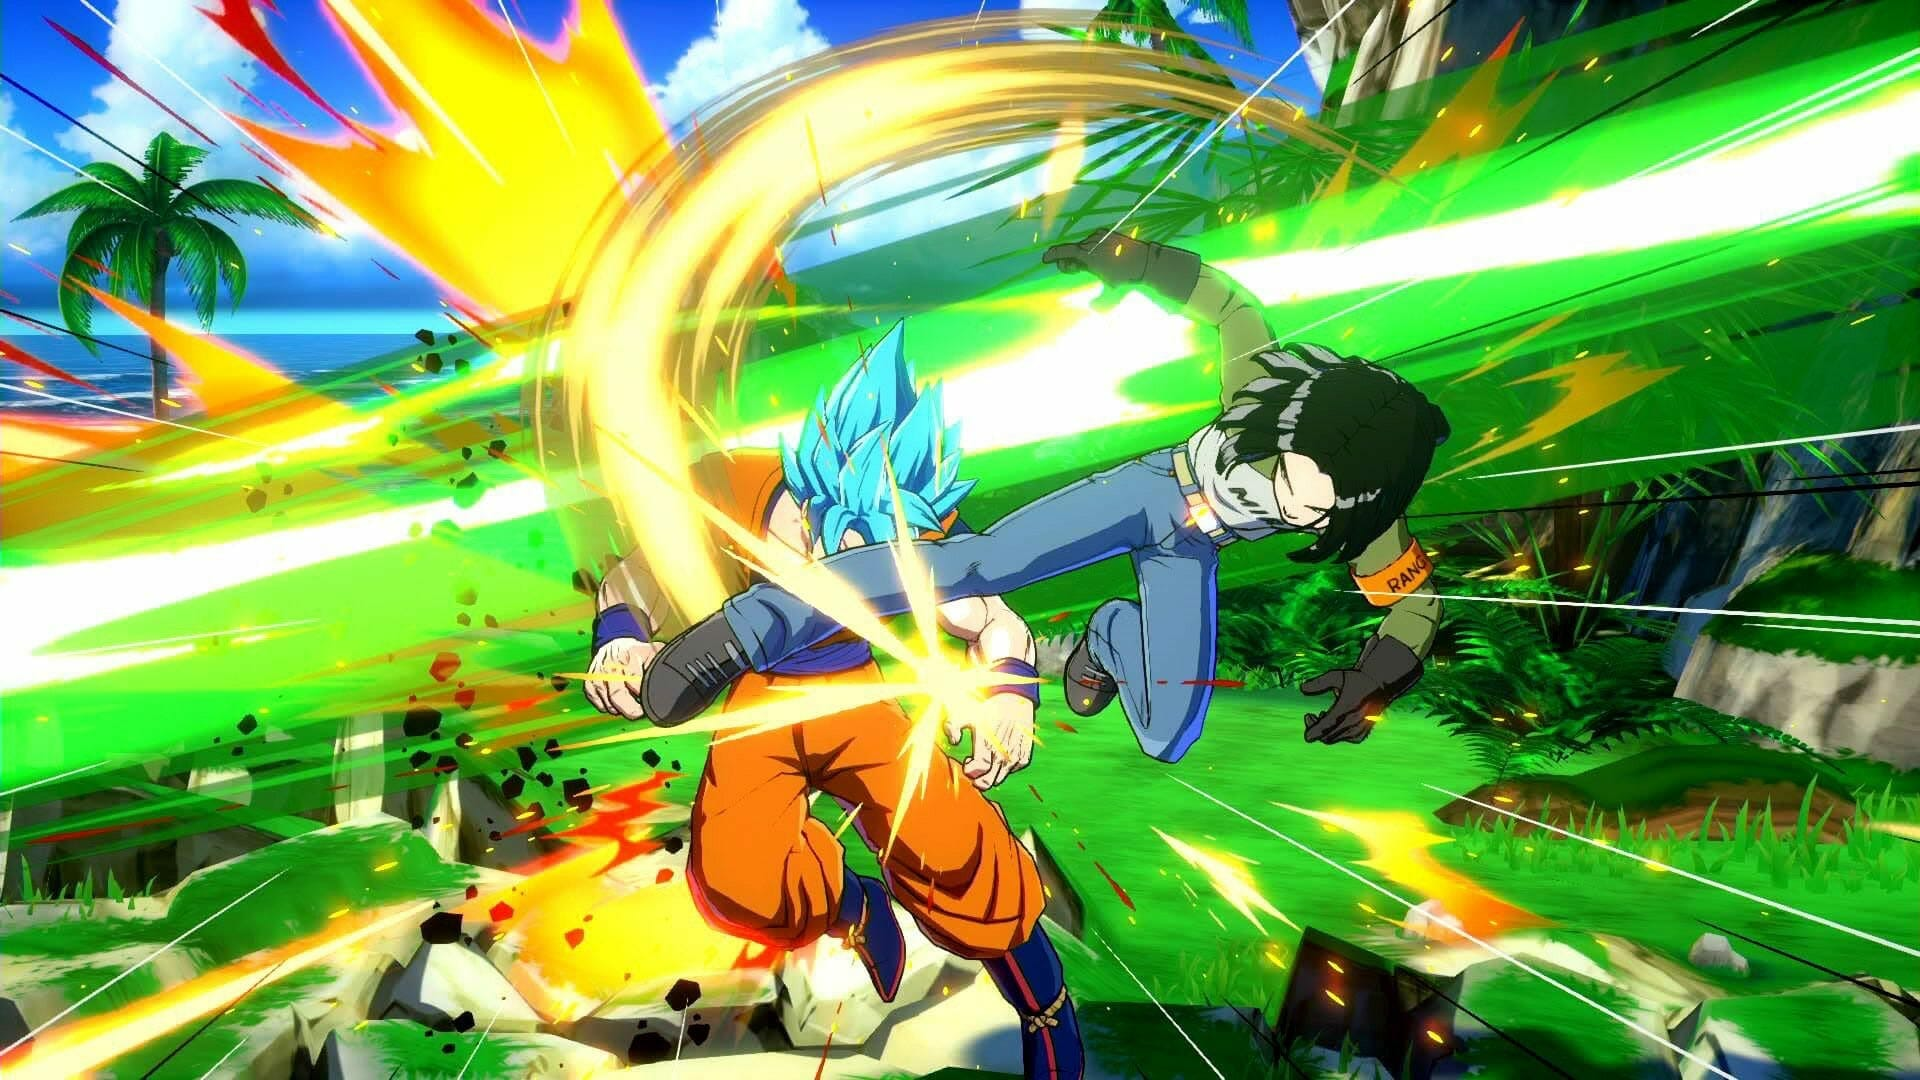 Android 17 and Cooler for Dragon Ball FighterZ